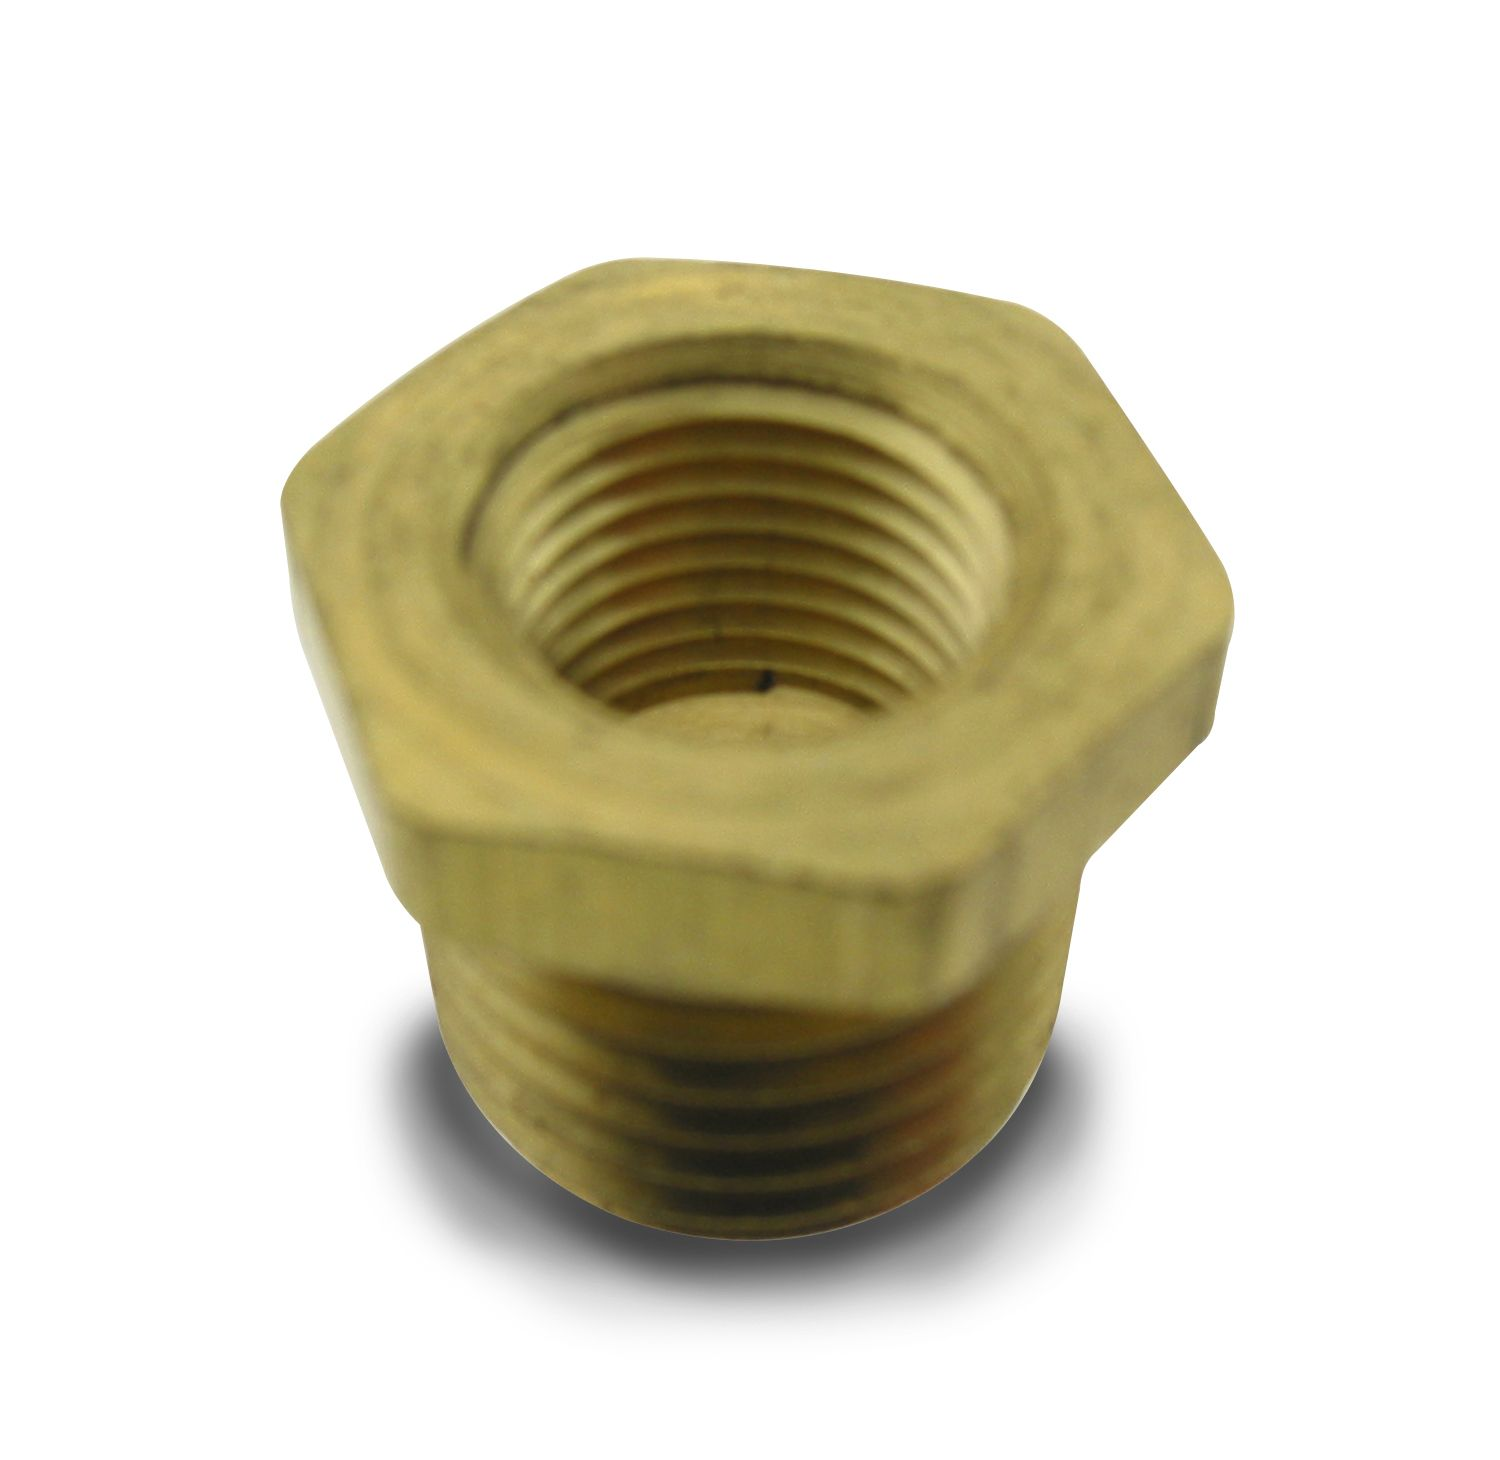 21610 Air Lift Adapter Fitting Bushing